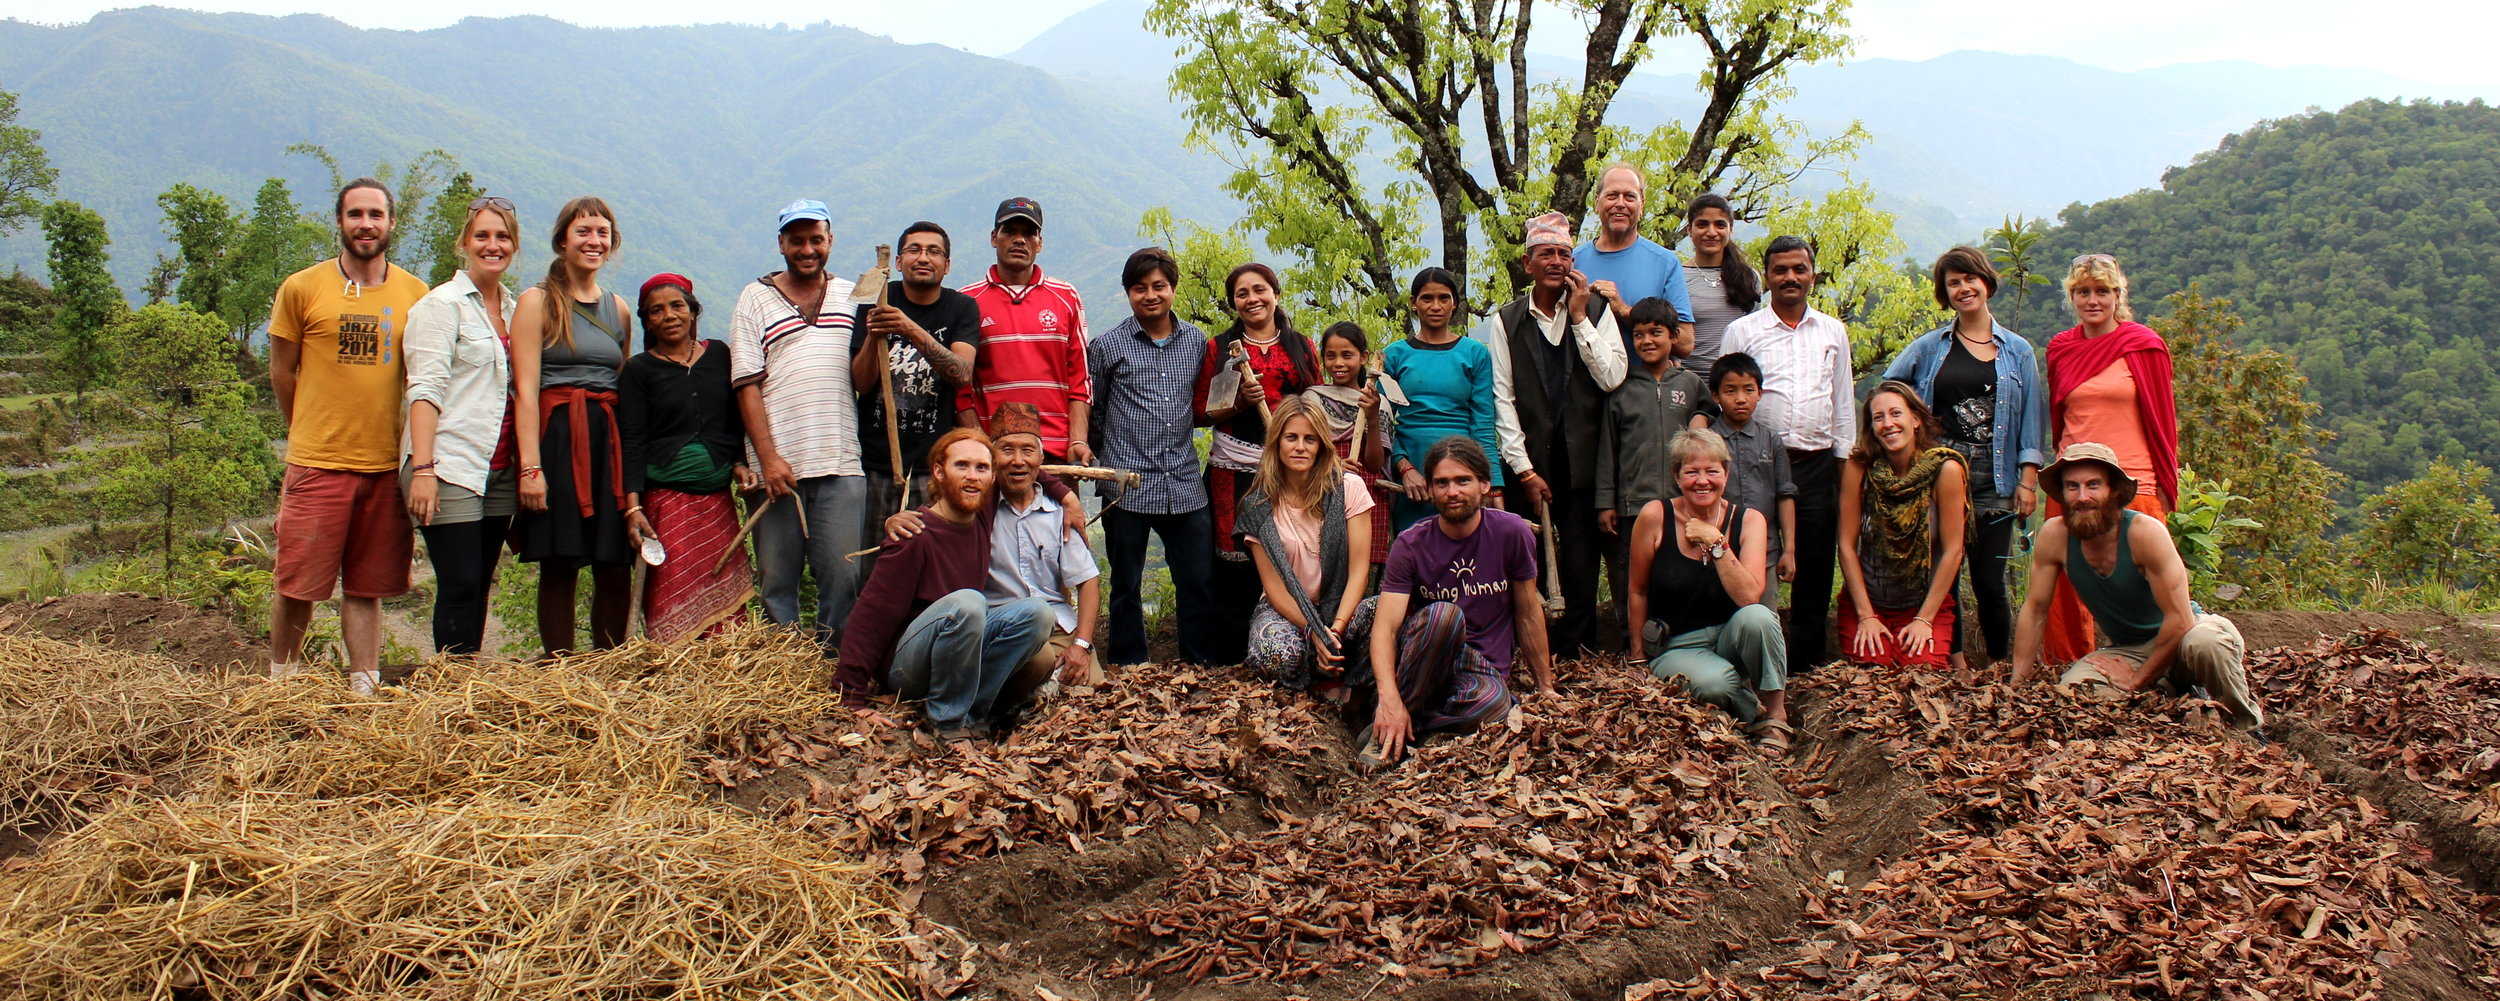 Nepal Adventure crew working with local people to regenerate the land.